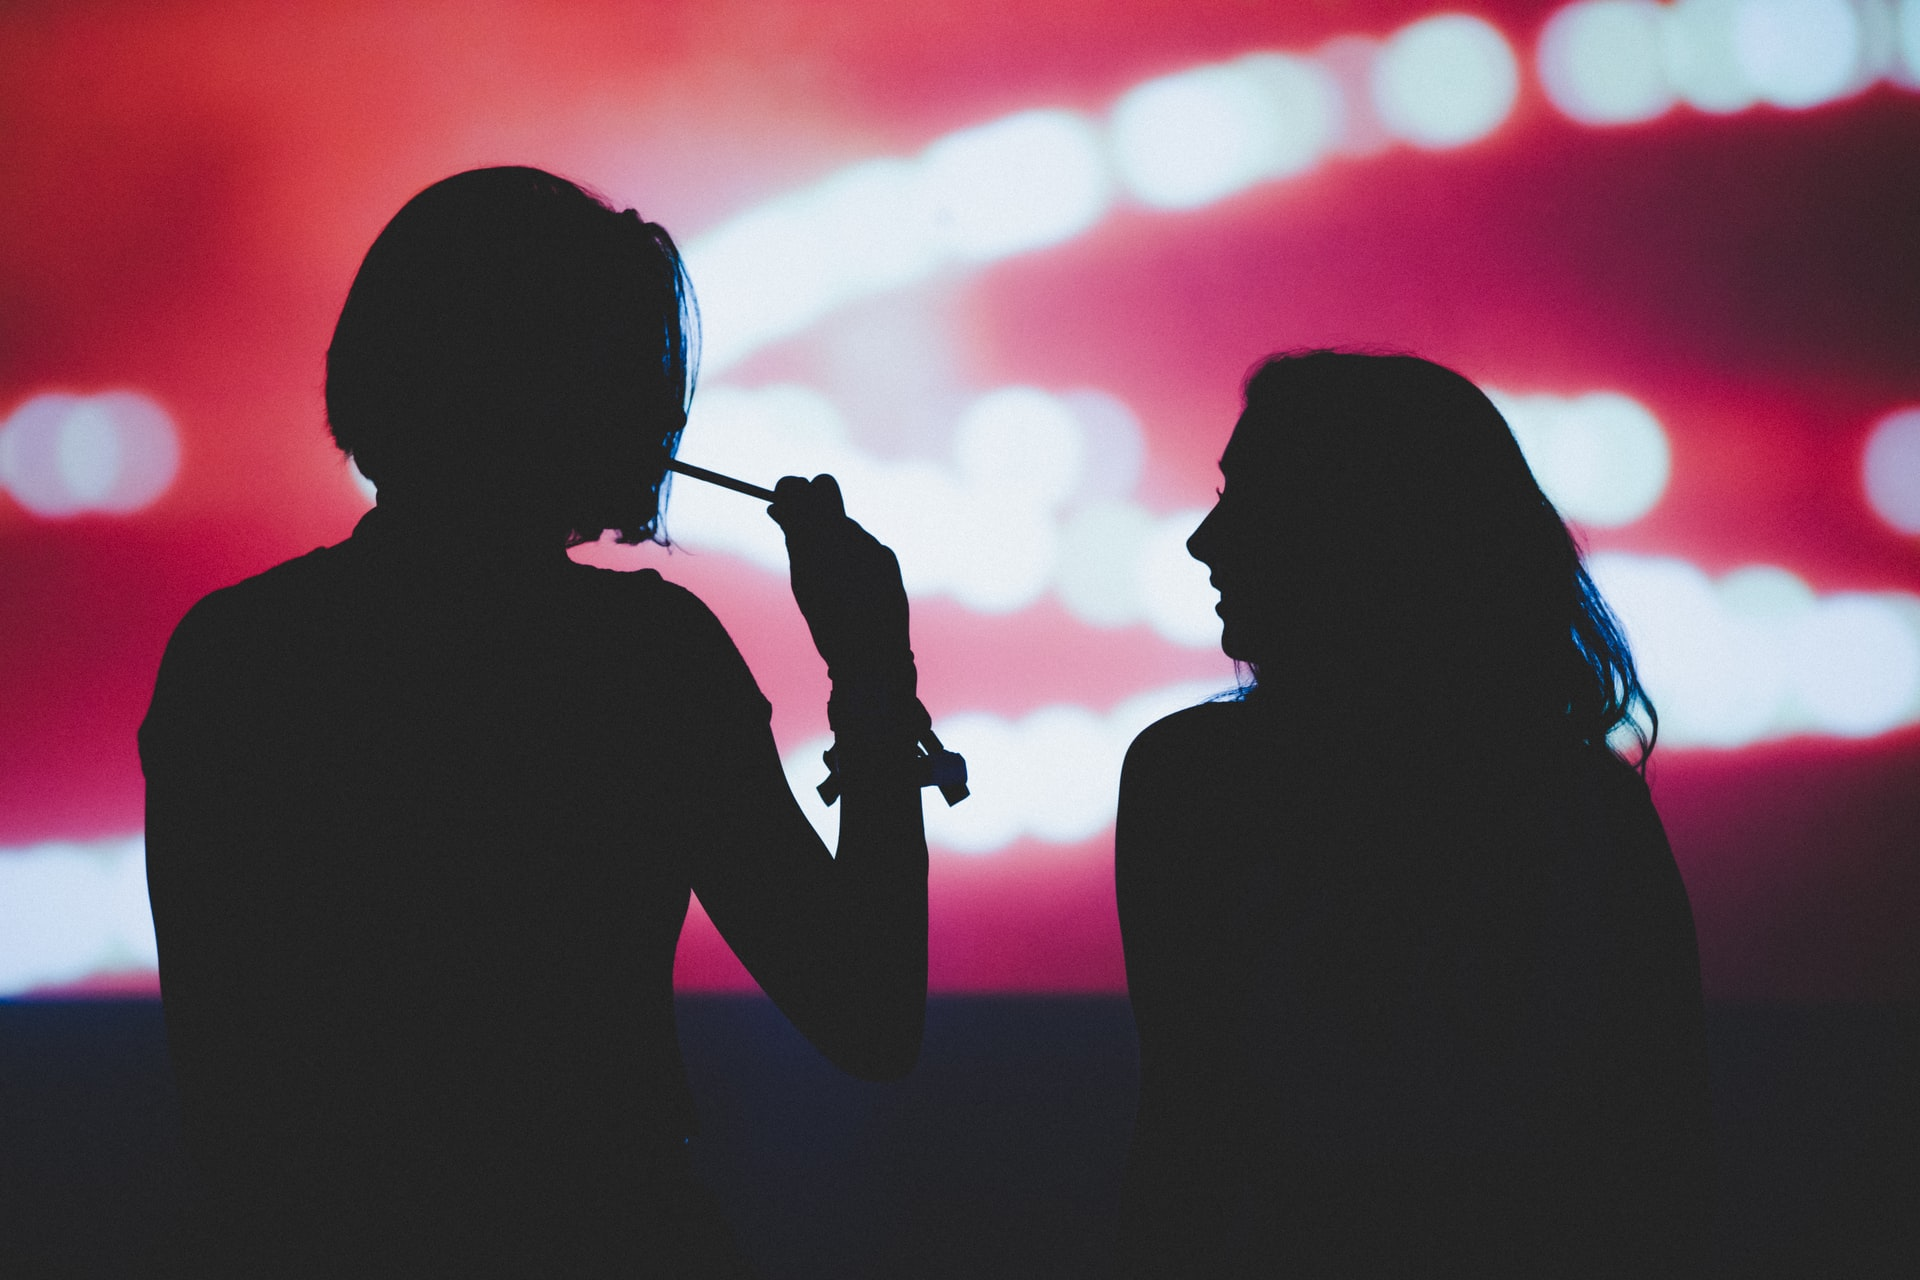 silhouette of two people smoking weed